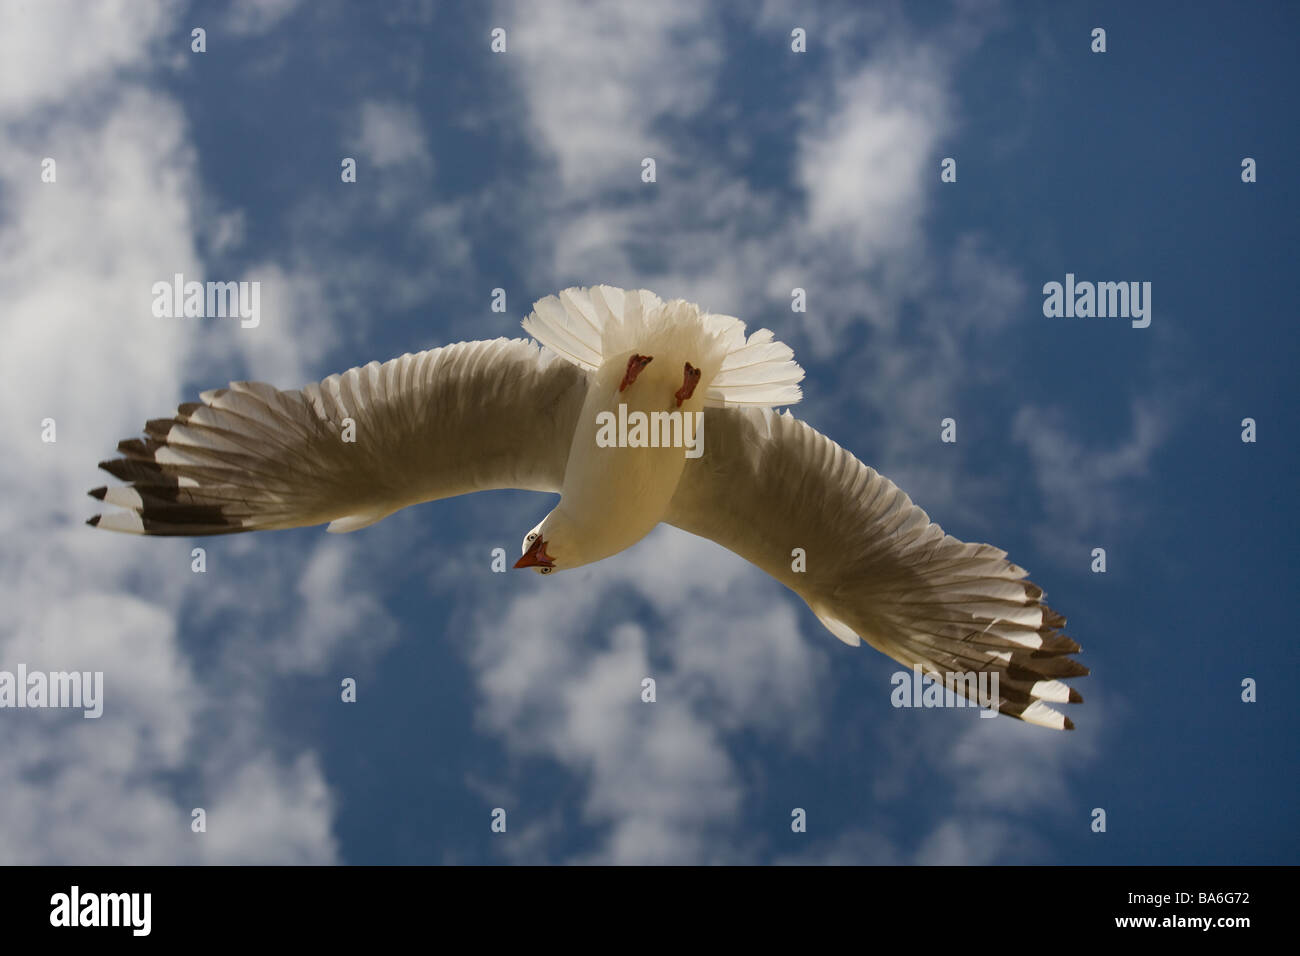 Red billed Gull Larus novaehollandiae or Silver Gull - Stock Image